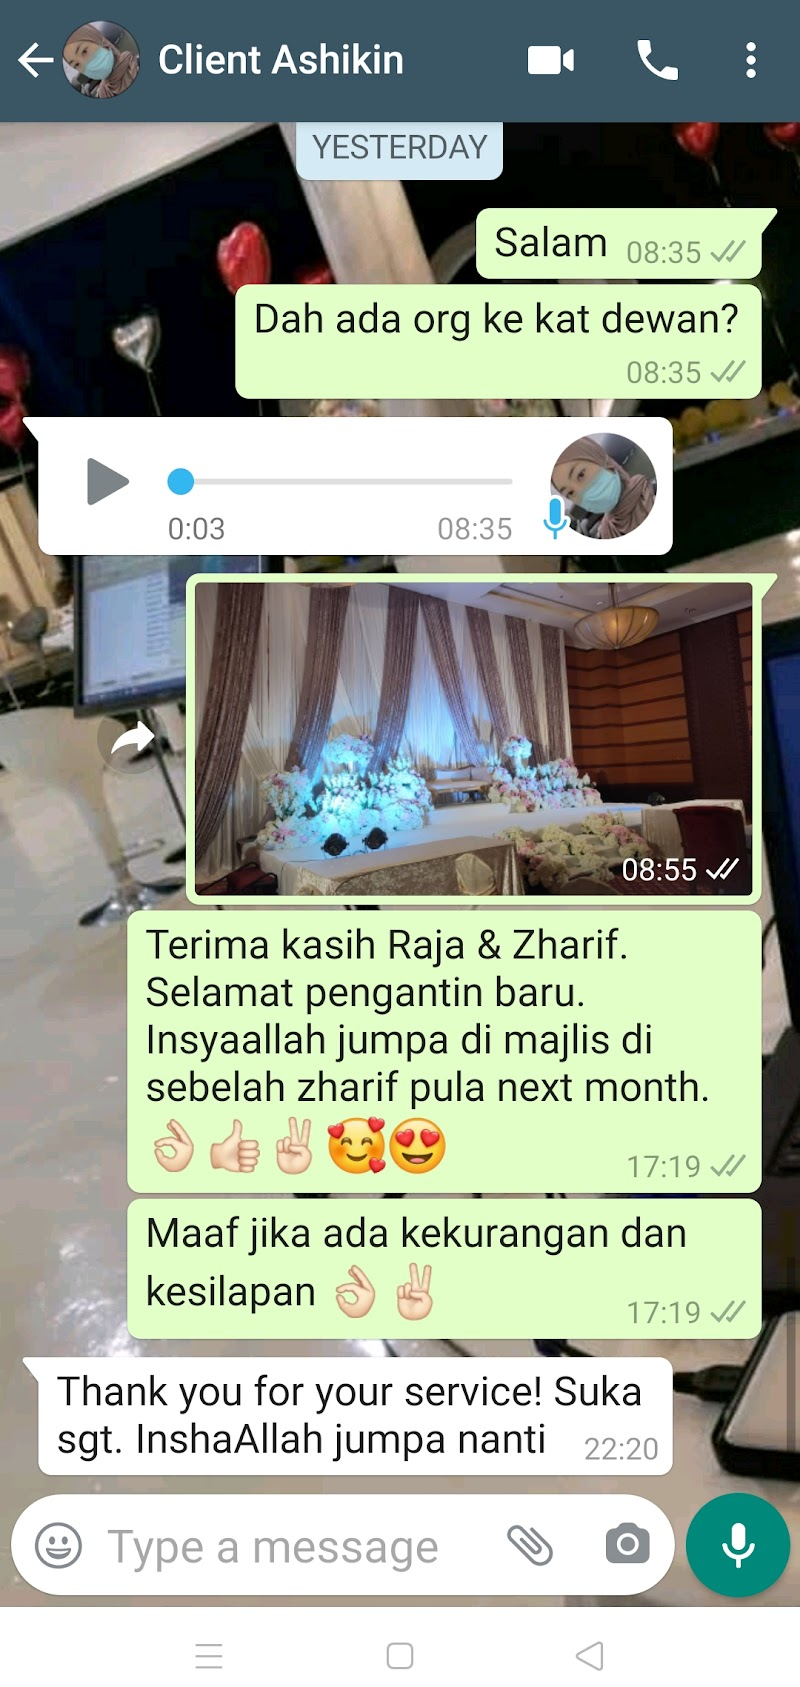 ANOTHER POSITIVE REVIEW/TESTIMONI BY OUR CLIENT